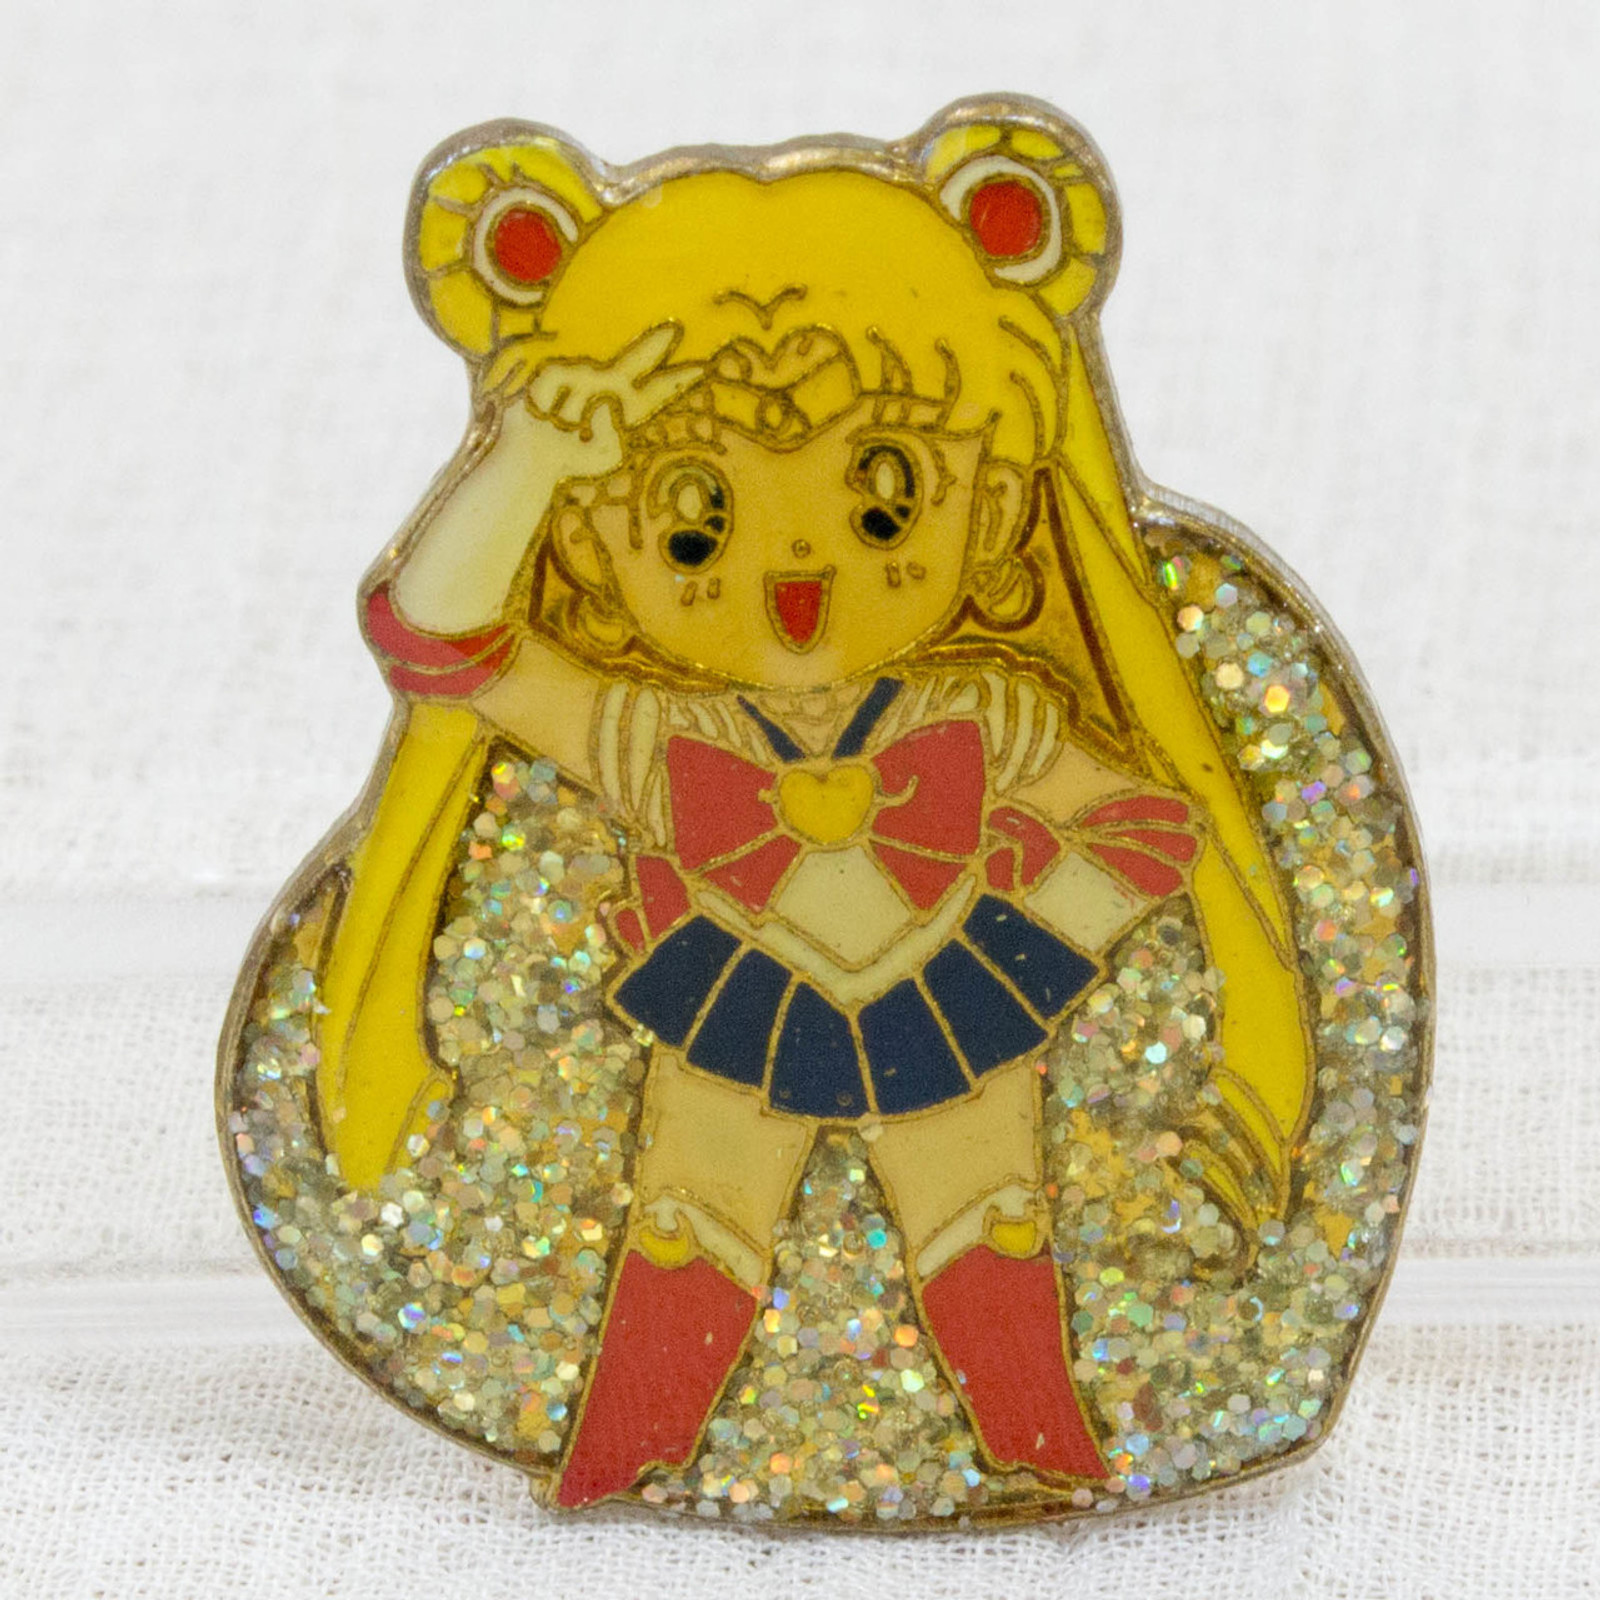 Sailor Moon Sailor Moon (Usagi Tsukino) Metal Pins Badge JAPAN ANIME MANGA 3